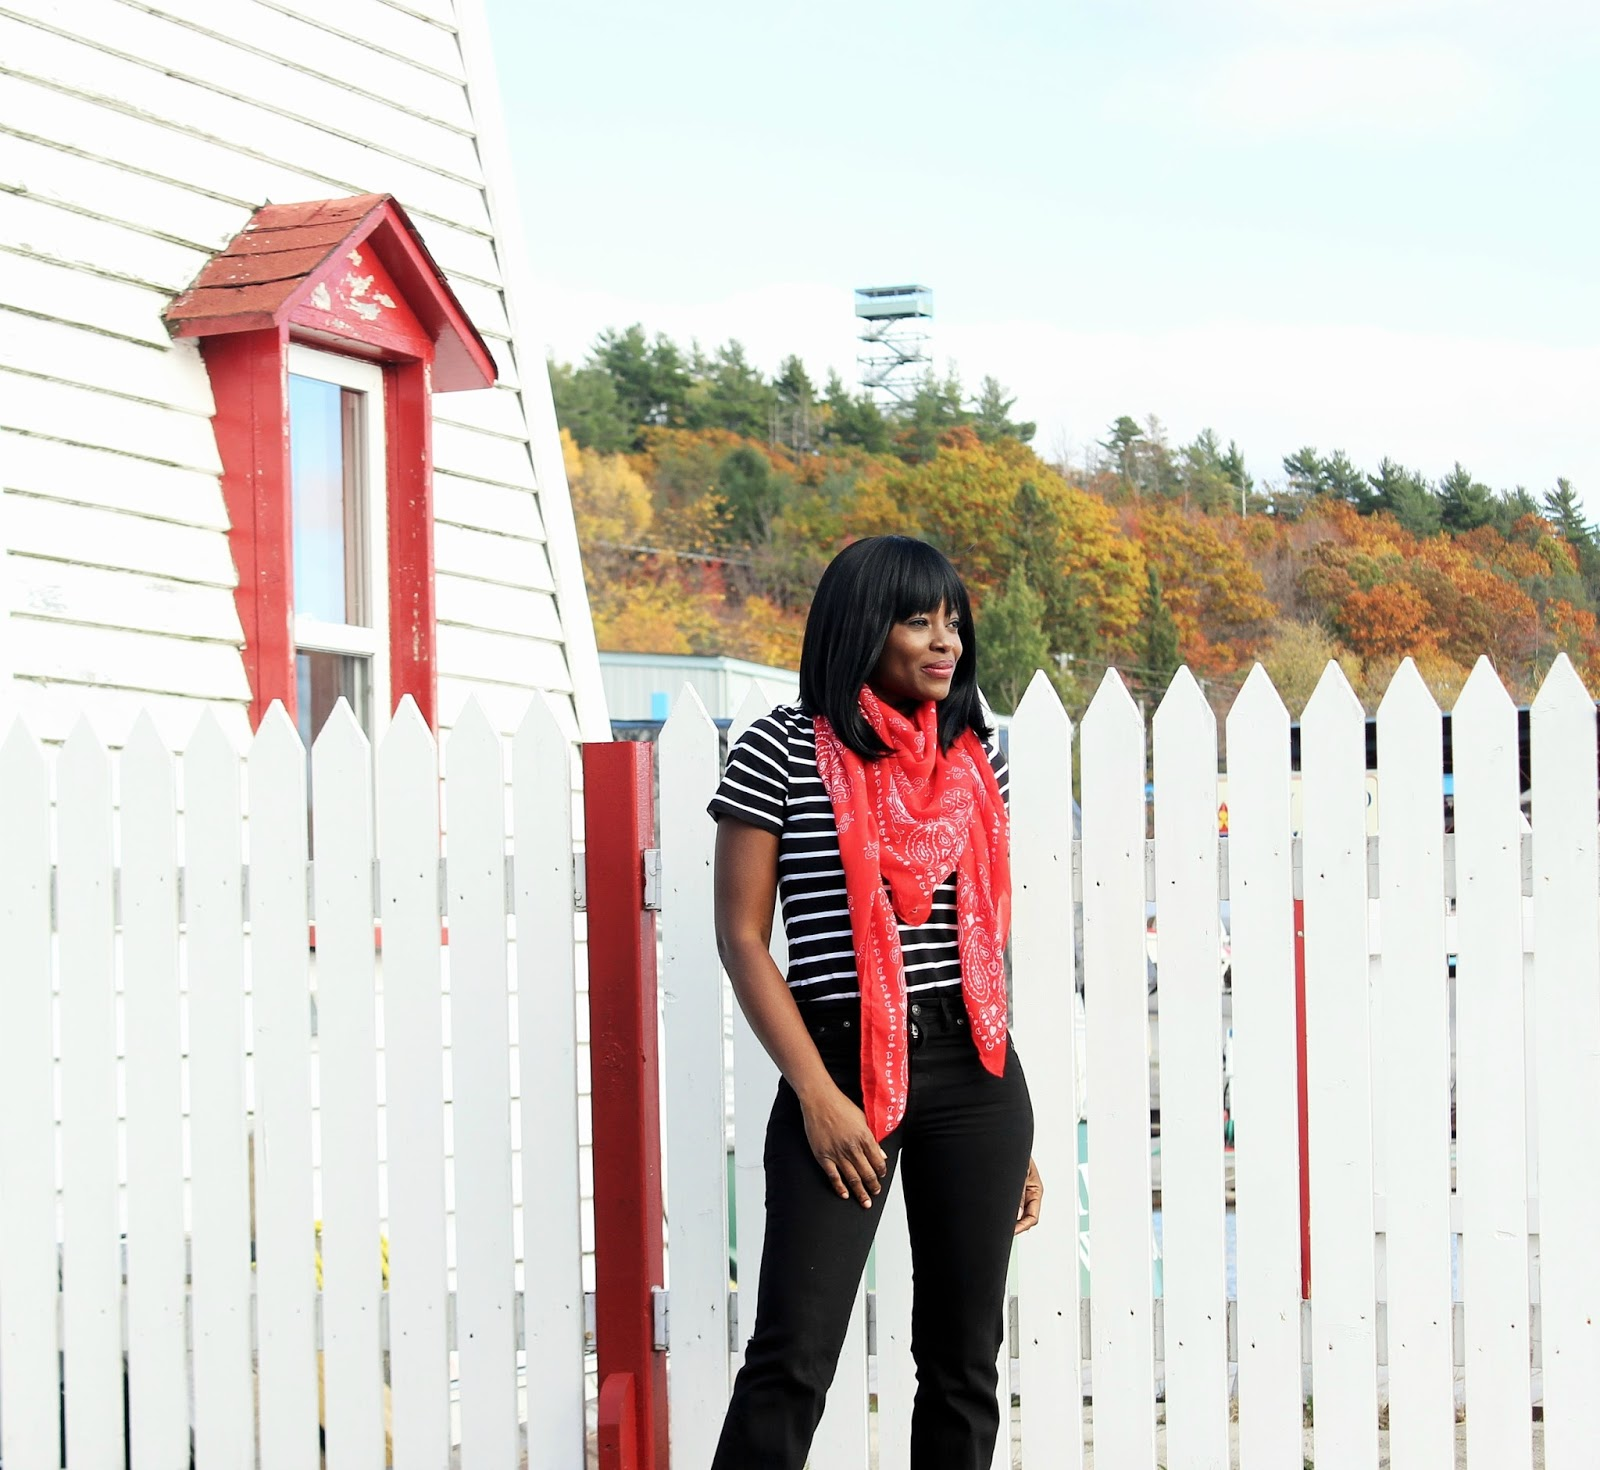 STRIPES, BELL BOTTOMS AND A RED SCARF AT THE LIGHTHOUSE IN PARRY SOUND MARINA